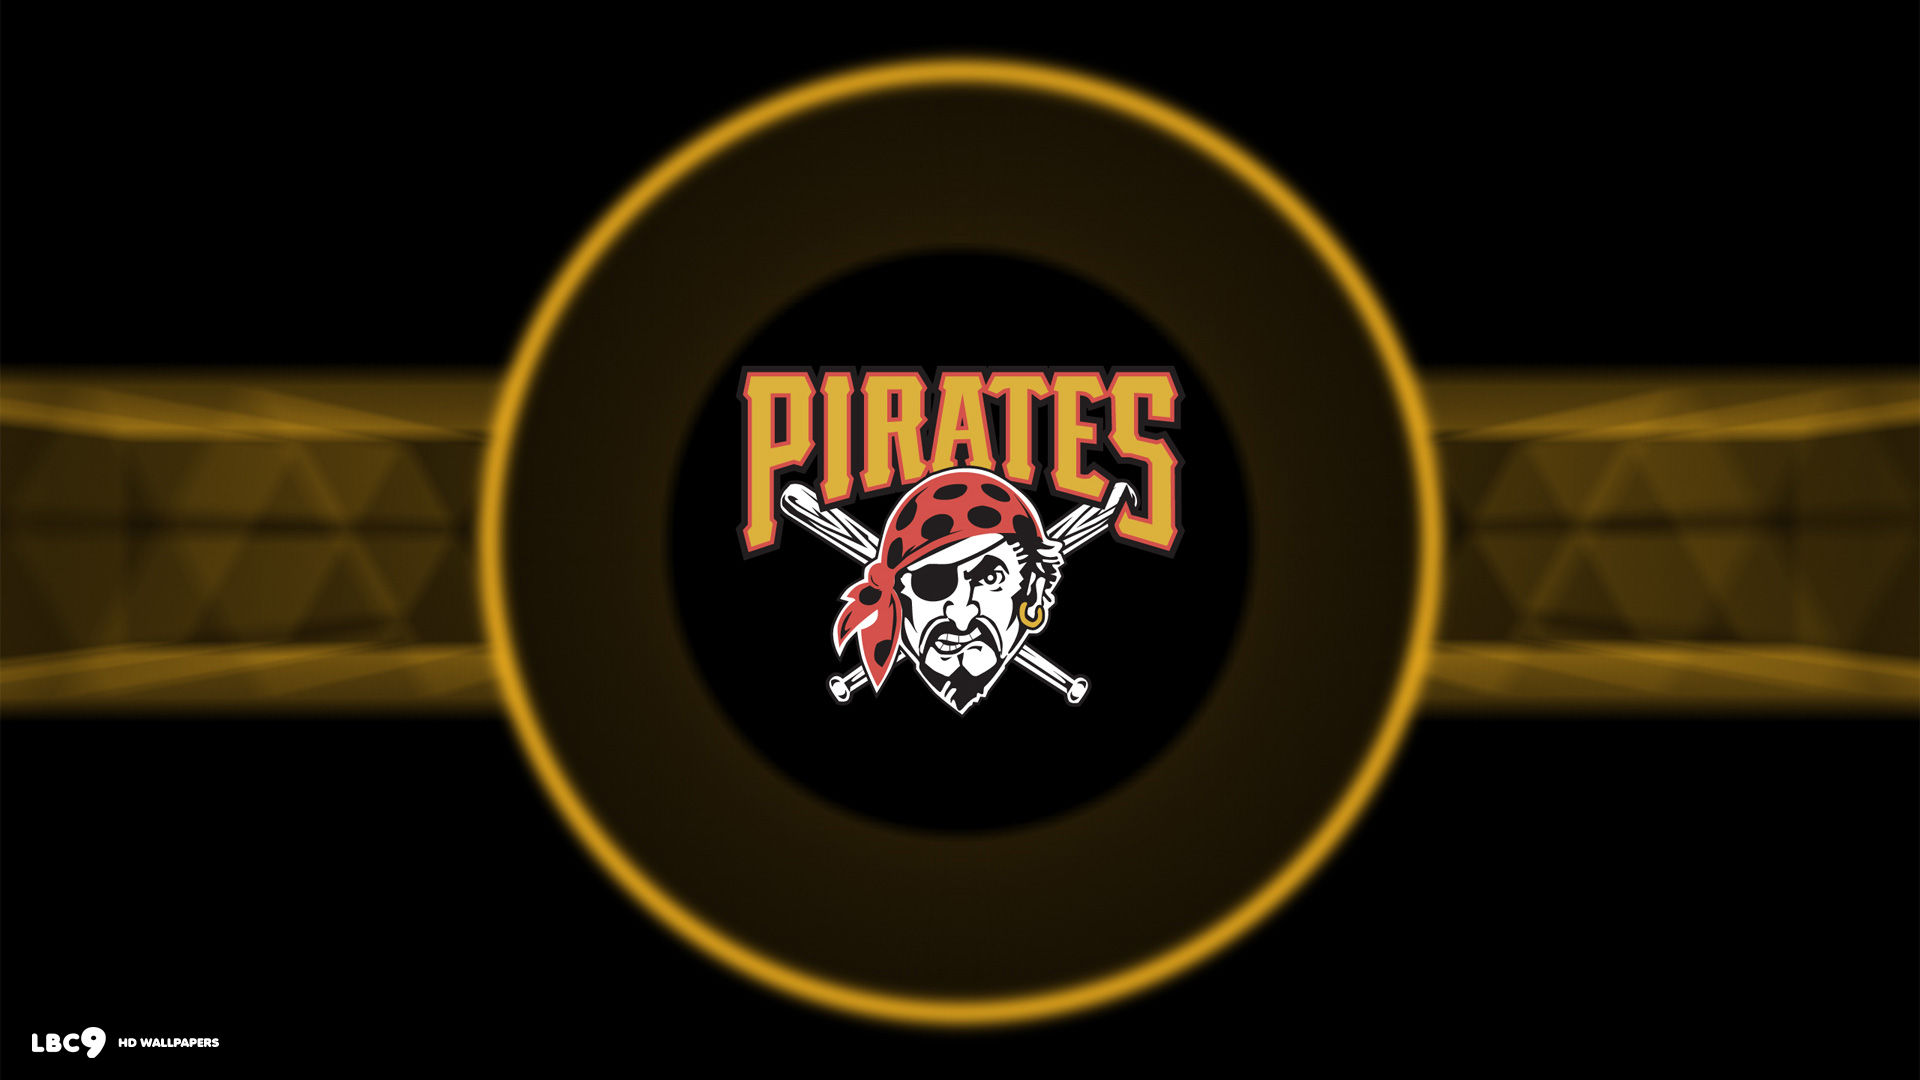 PITTSBURGH PIRATES baseball mlb f wallpaper background 1920x1080